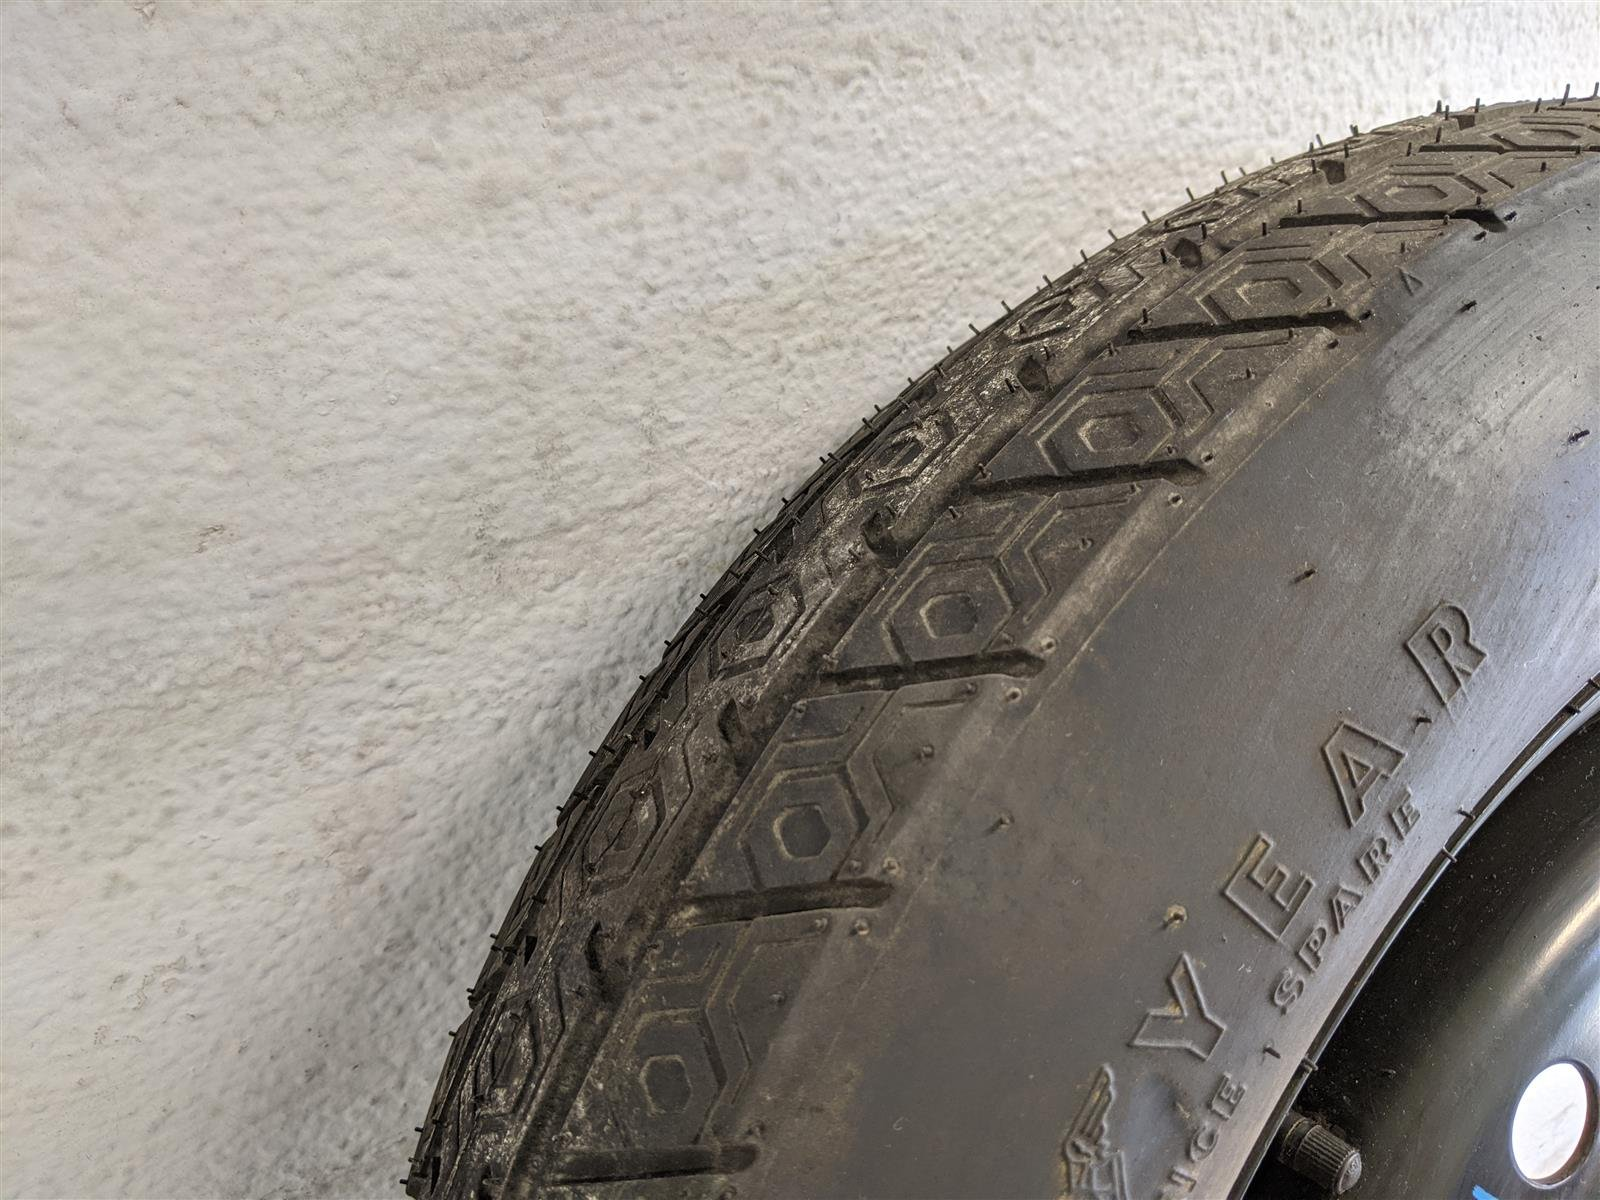 2017 Honda Pilot 17 Inch Spare Rim And Tire Replacement